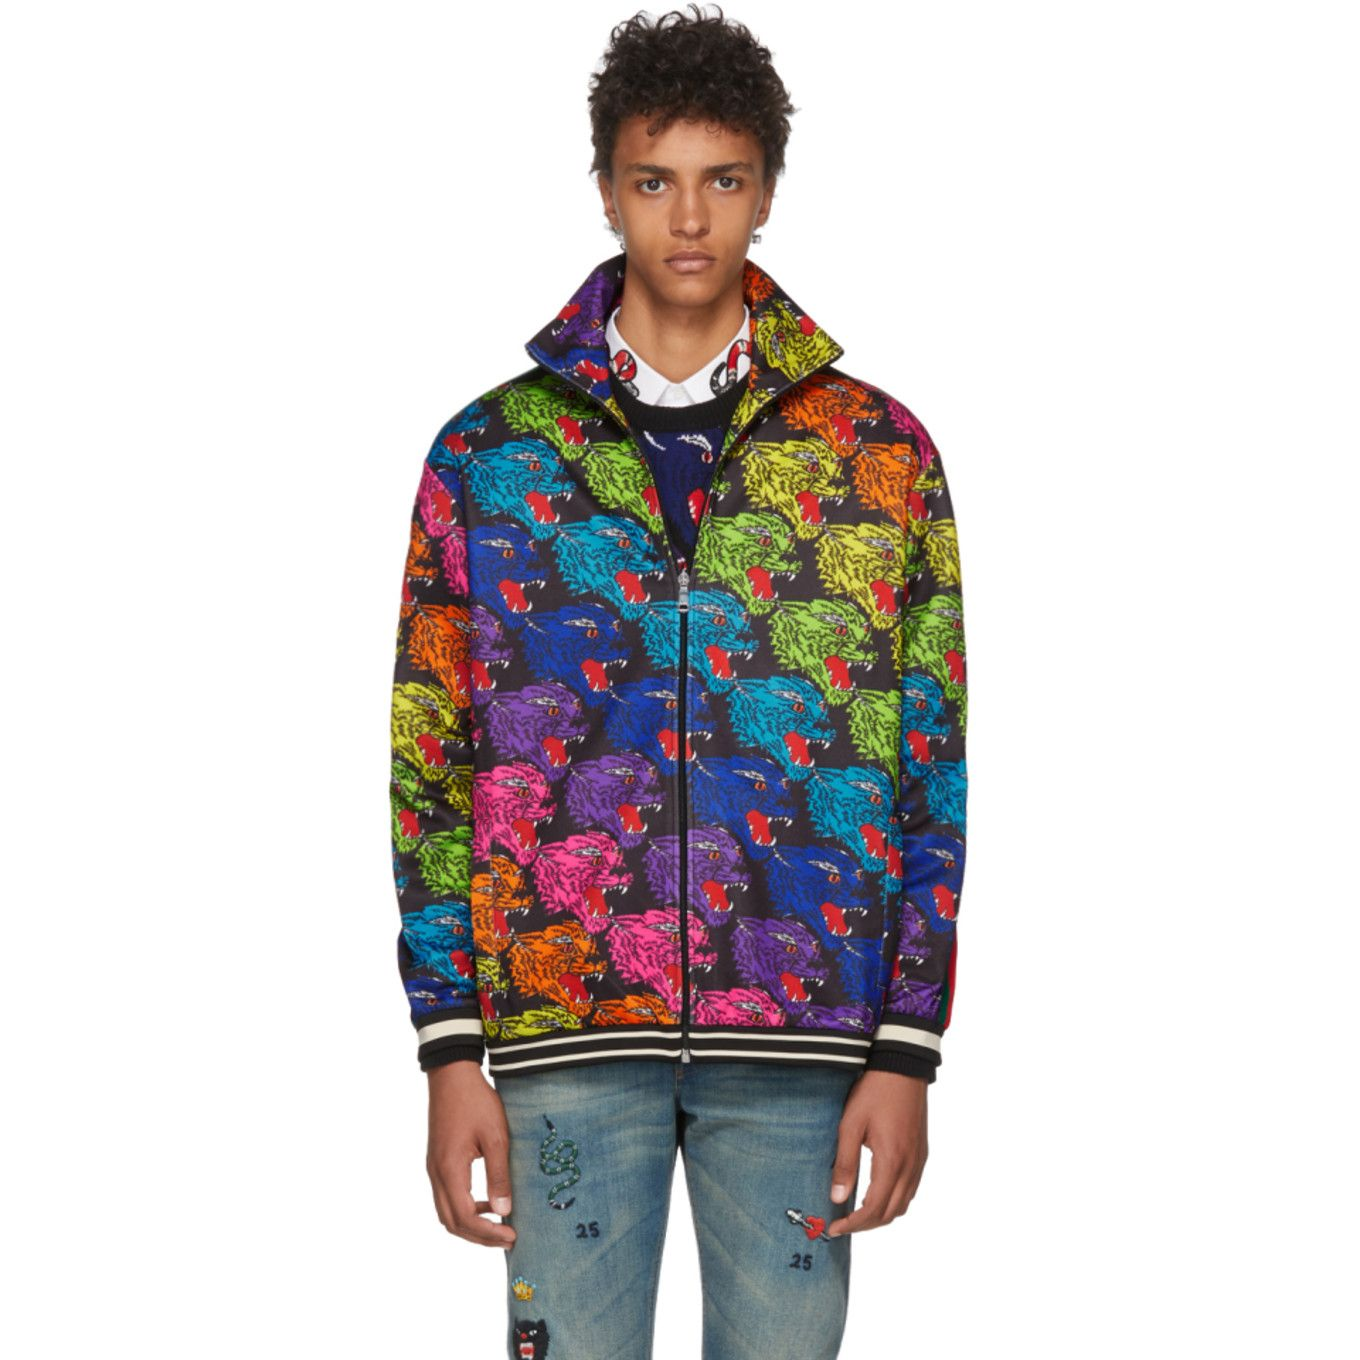 Gucci Black Panther Face Track Jacket Track Jackets Black Panther Face Gucci Black [ 1360 x 1360 Pixel ]